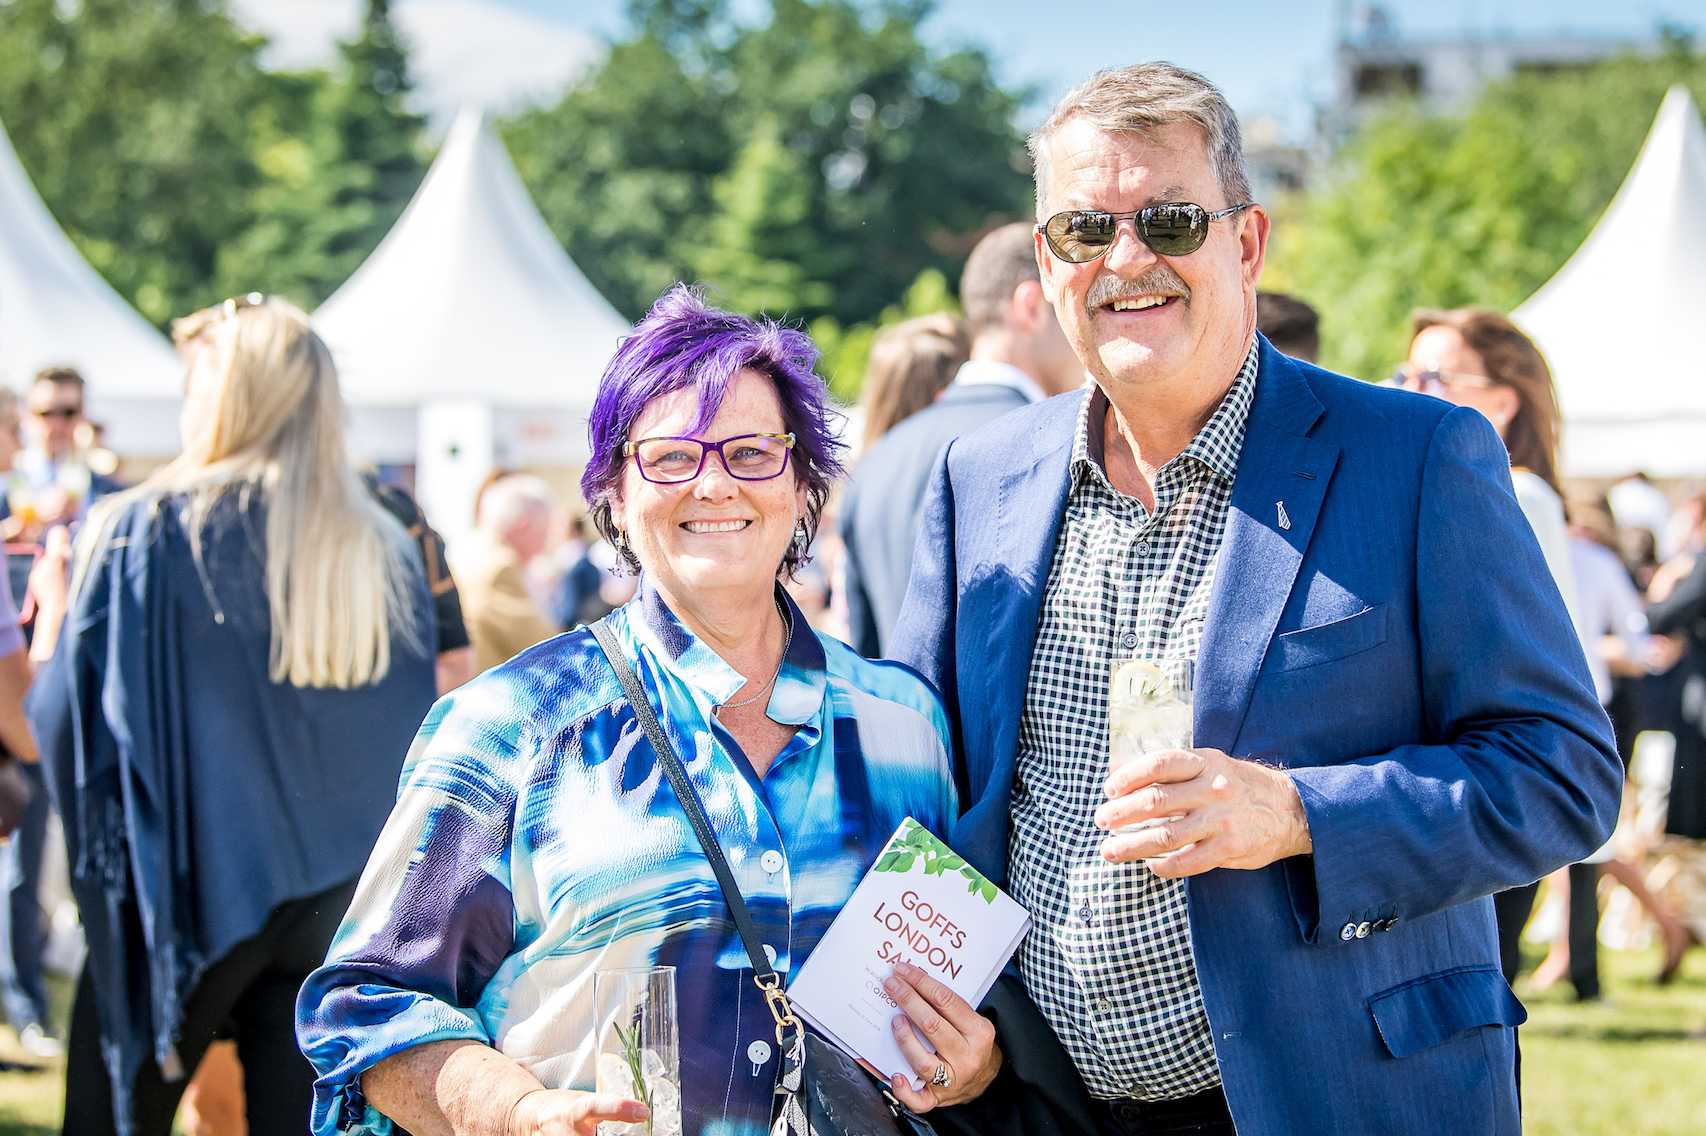 Debbie and Paul Kepitis, owners of Winx, were among the internationals who flocked to the Goffs London Sale last year (credit: Sarah Farnsworth